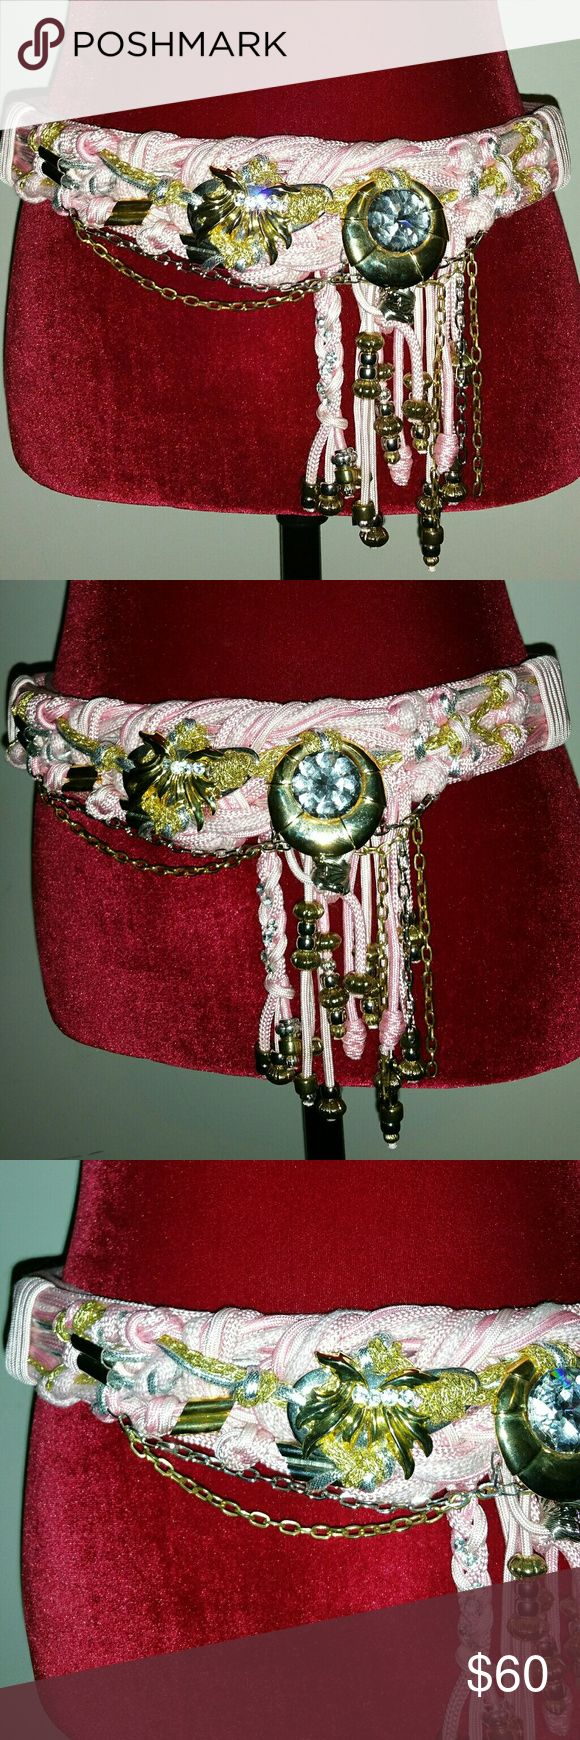 """😍""""REBECCA'S"""" Tie Knotted Robe Beaded Belt😍 Rebecca's Tie Knotted Robe Beaded Belt. 48.5"""" approx length. Colors Pink. Bronze. Silver. Beads and Rhinestone are in tact. Very gorgeous belt. Pre-Loved. Good Condition. Belt hooks around the waist. Velcro Attach.  😍 Please view all photos 😍Make an Offer 😍Let's Chat Rebeccas Accessories Belts"""